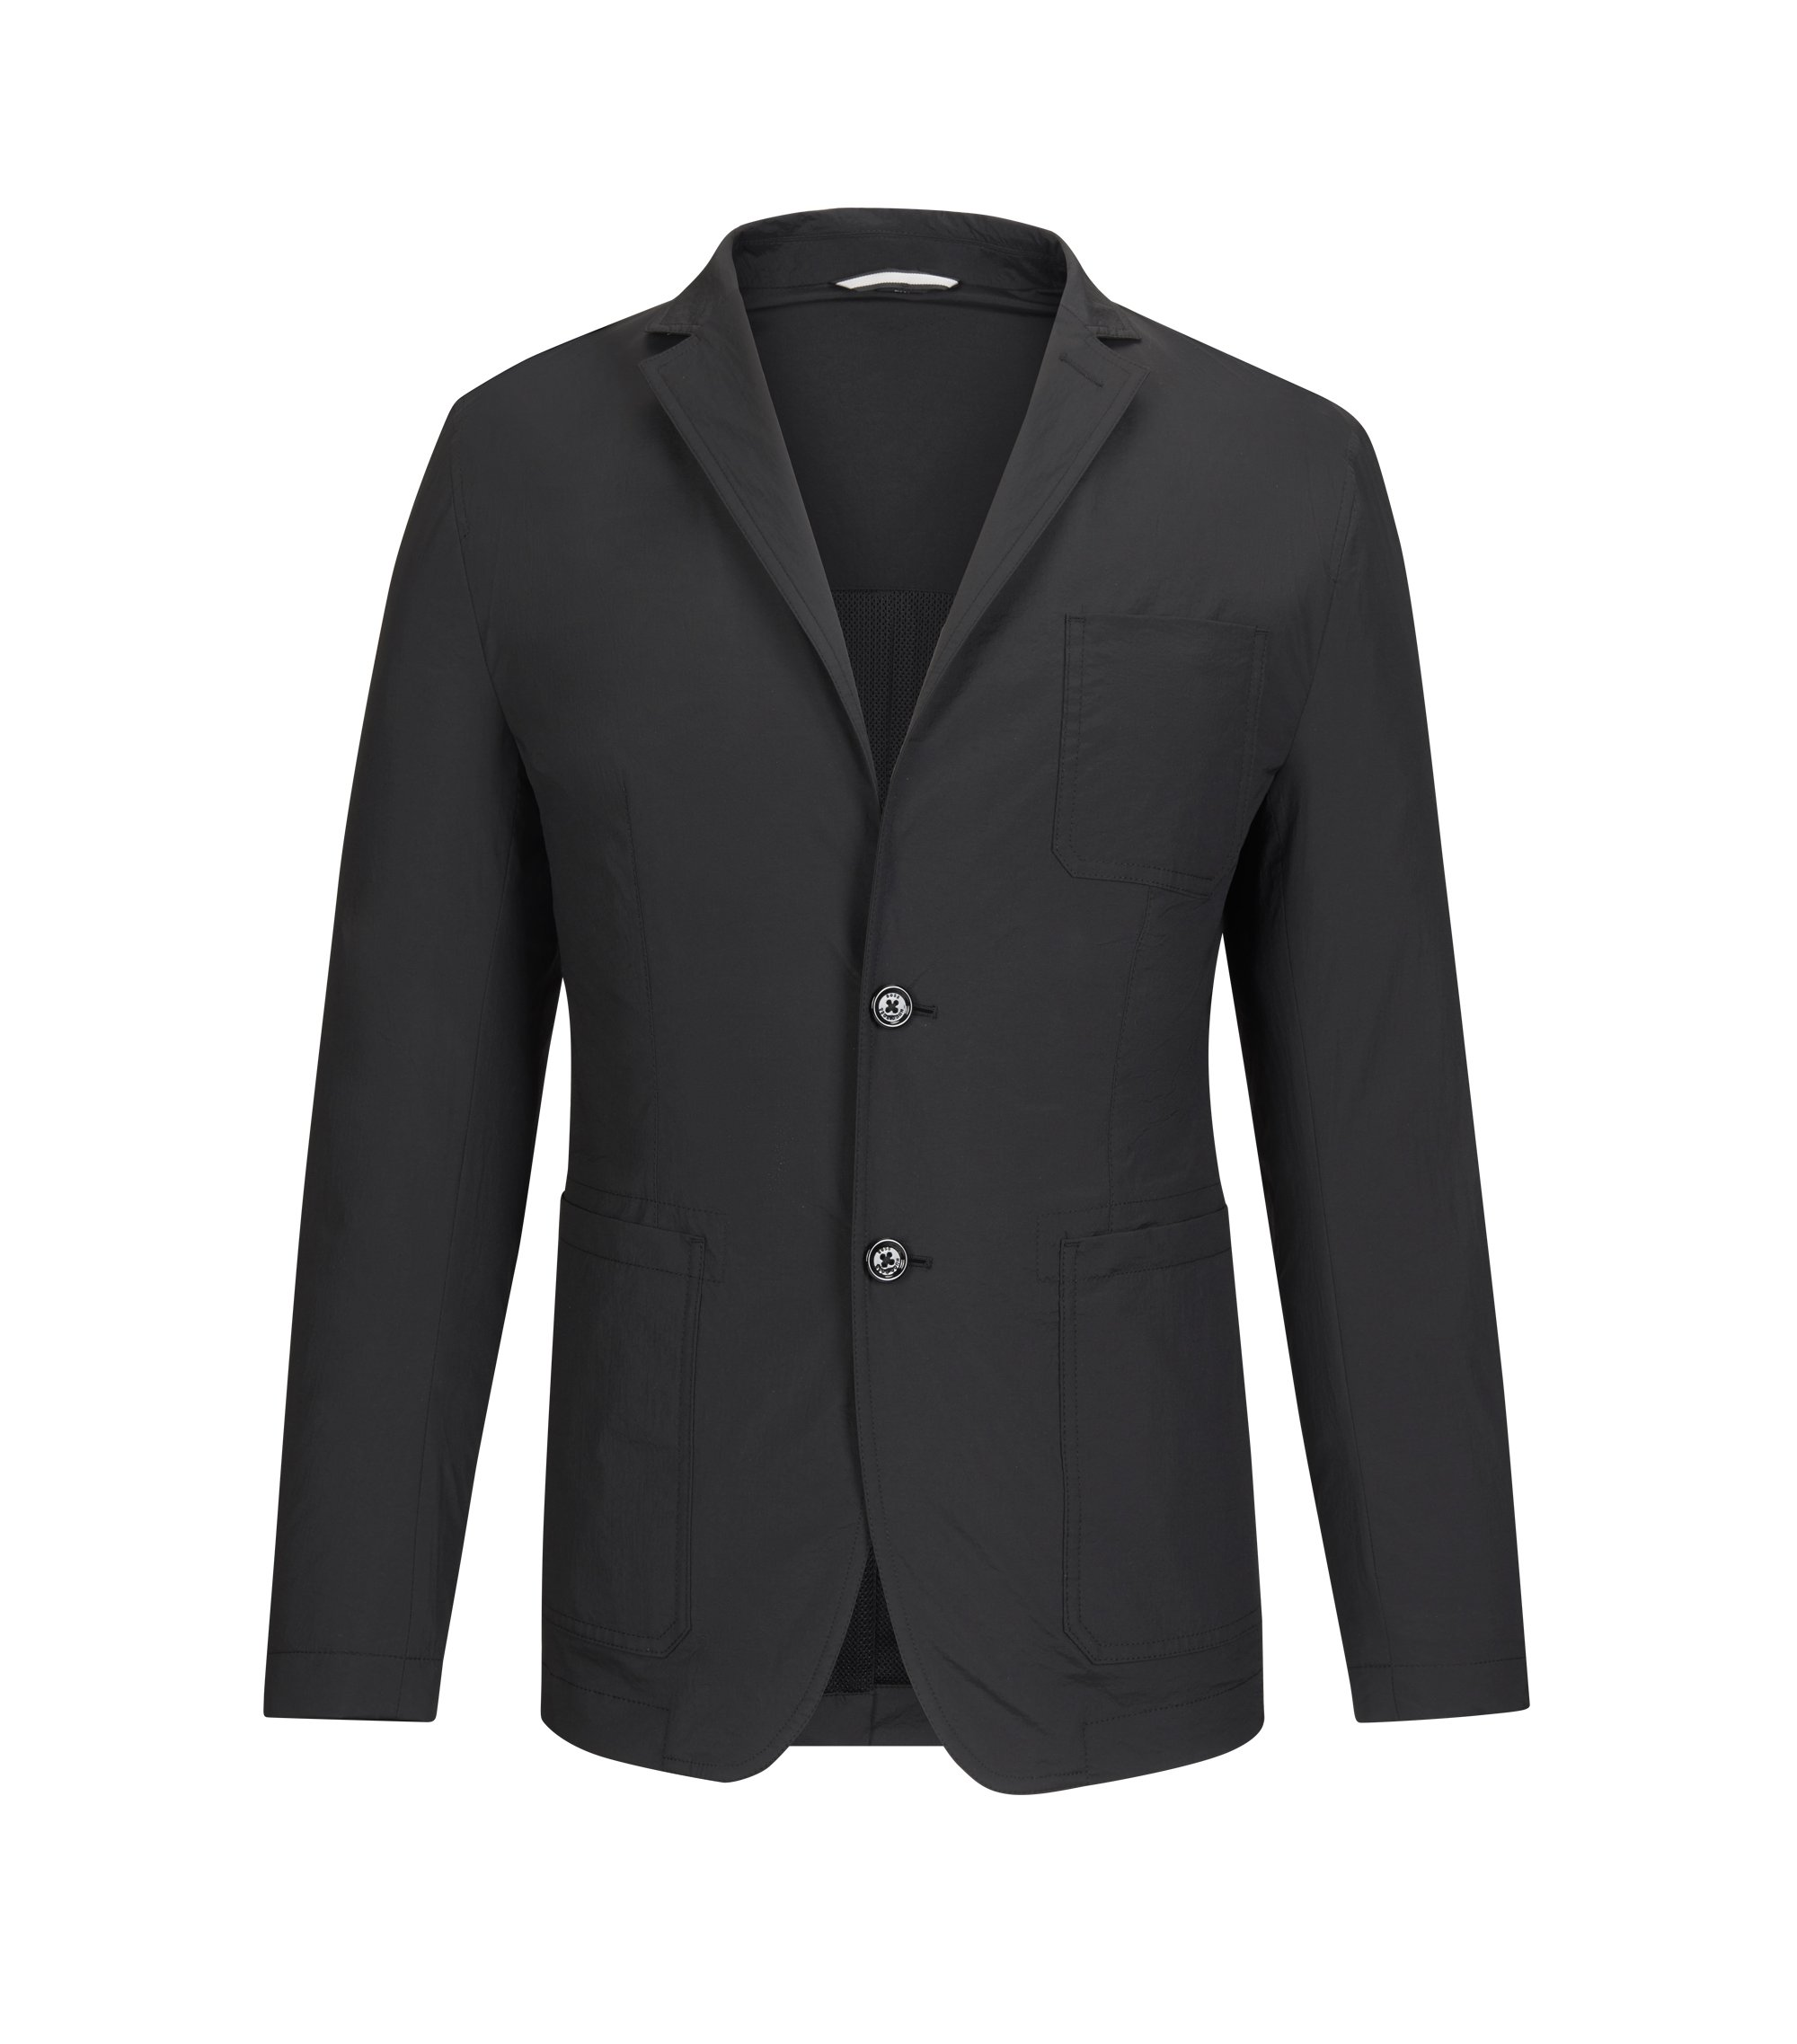 Nylon Sport Coat, Slim Fit | Noas, Black